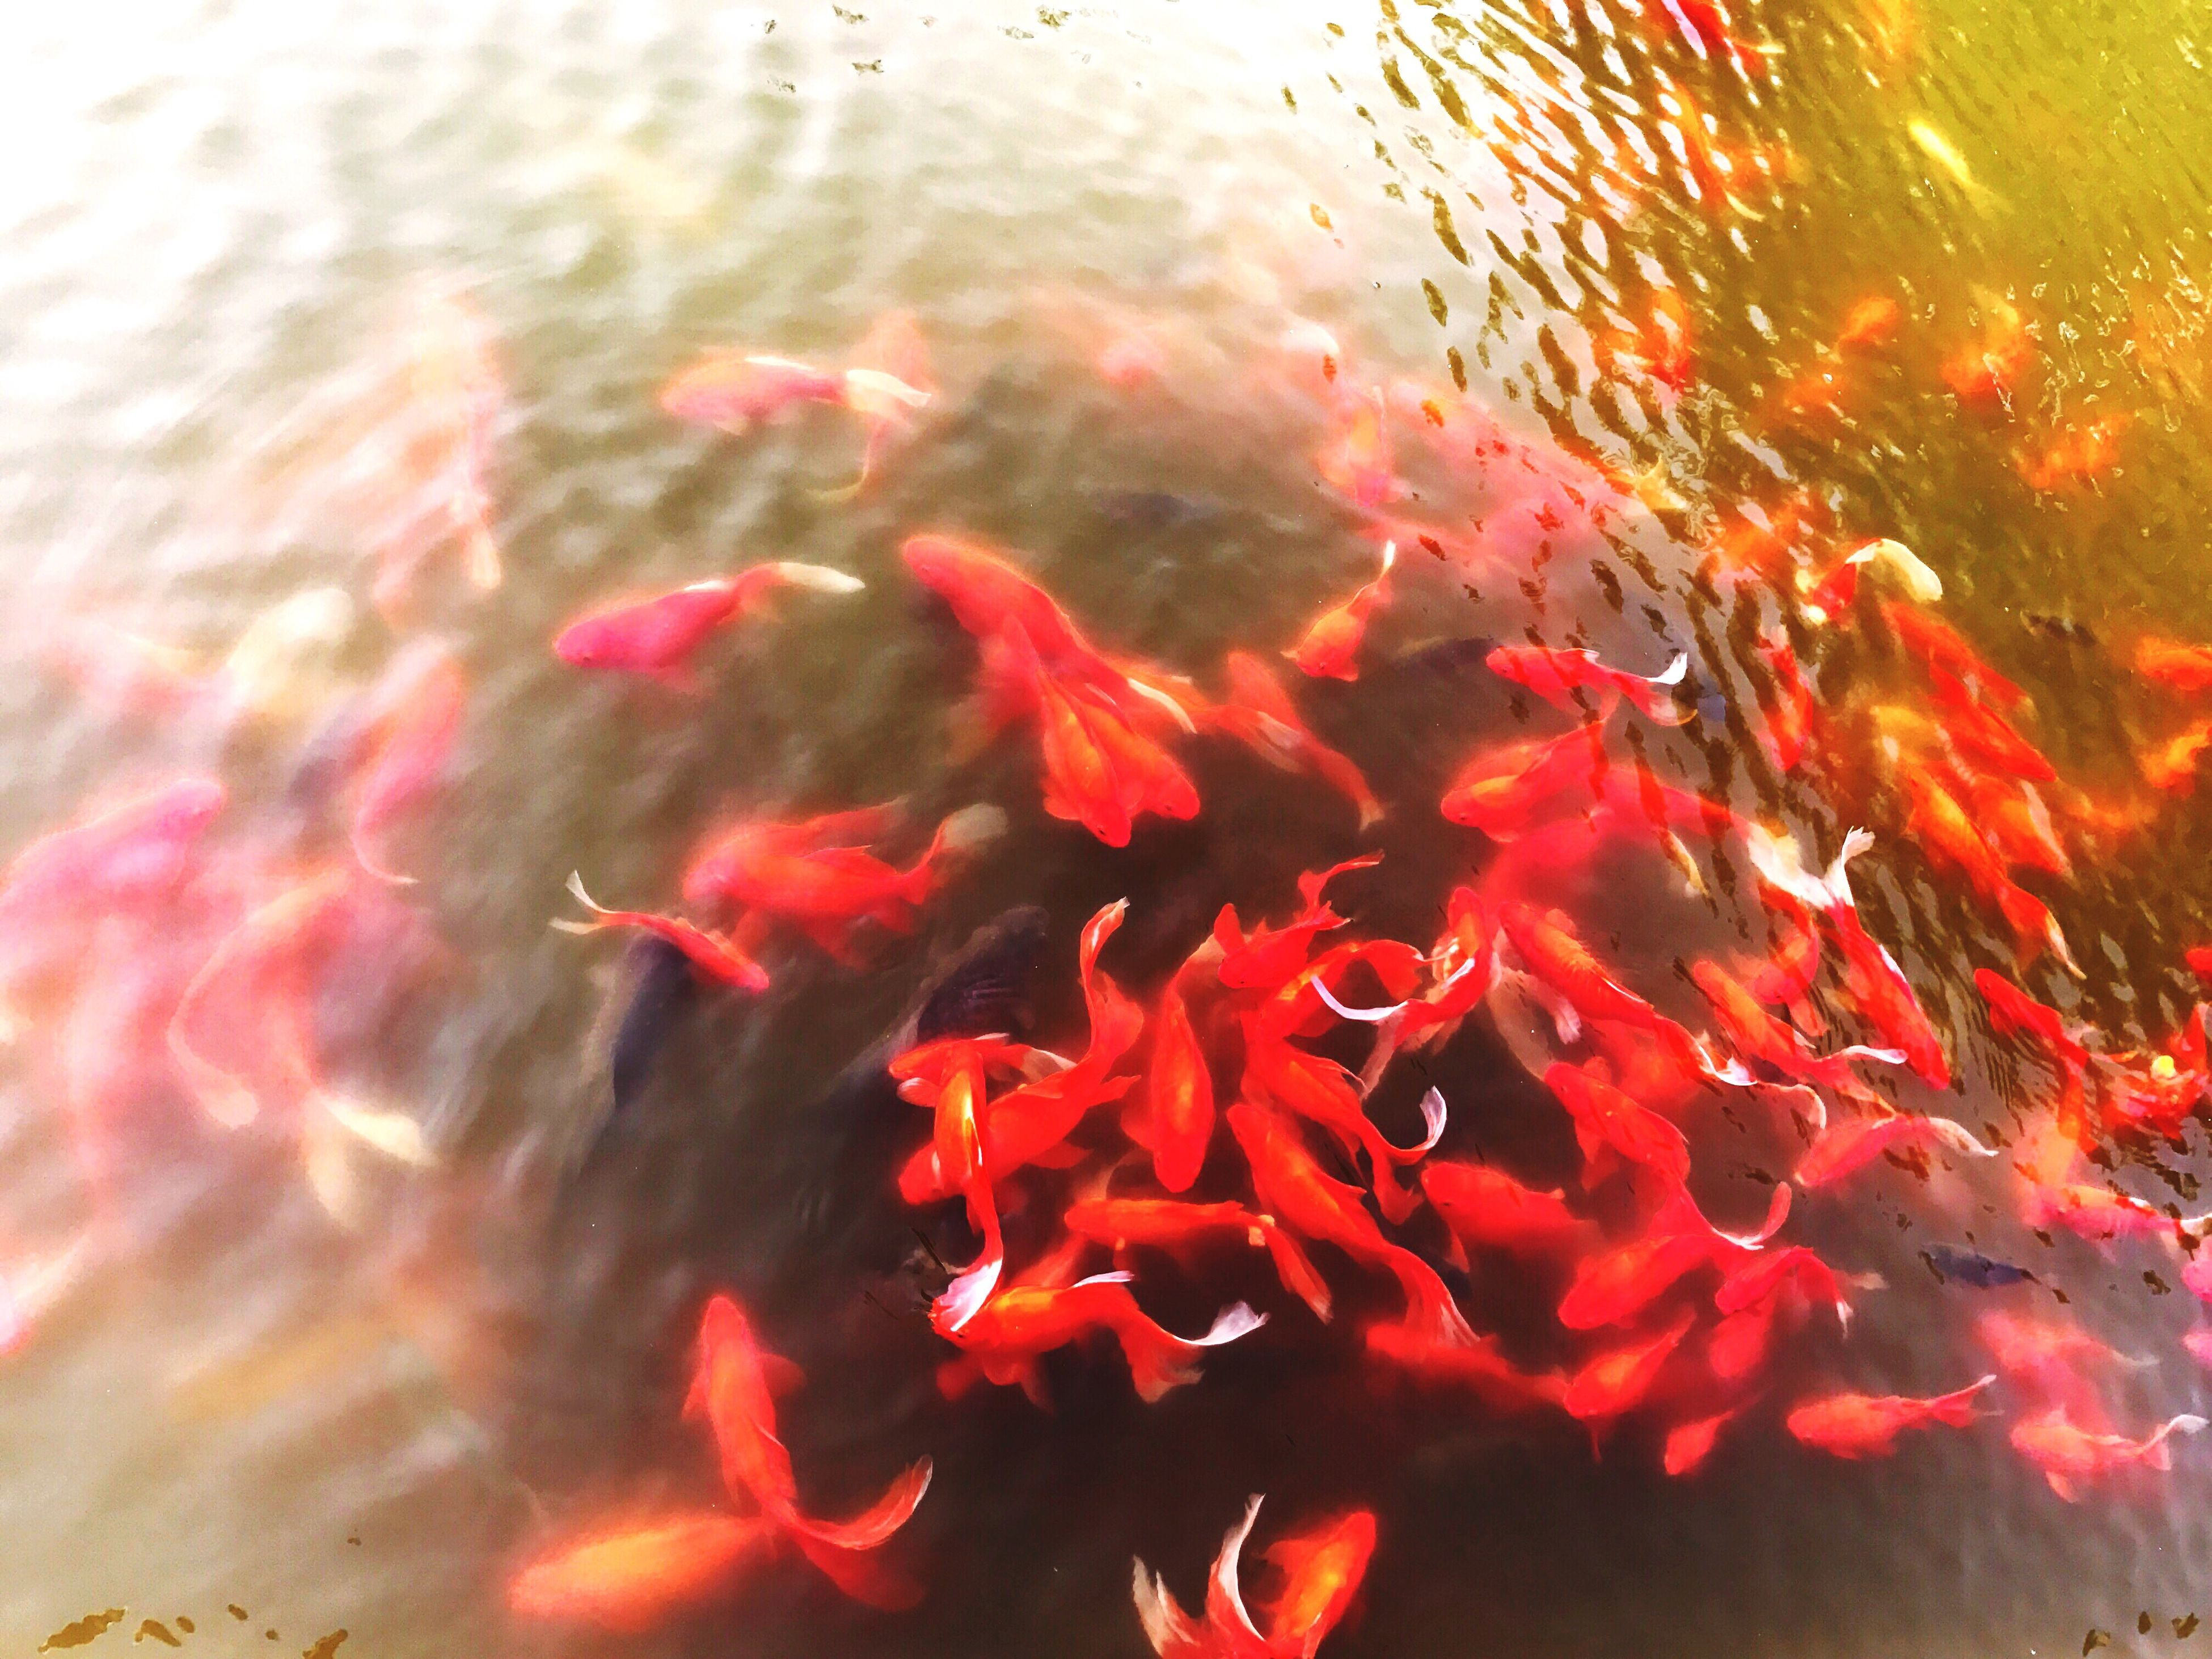 water, animal themes, swimming, koi carp, fish, sea life, close-up, animals in the wild, nature, carp, large group of animals, outdoors, no people, day, beauty in nature